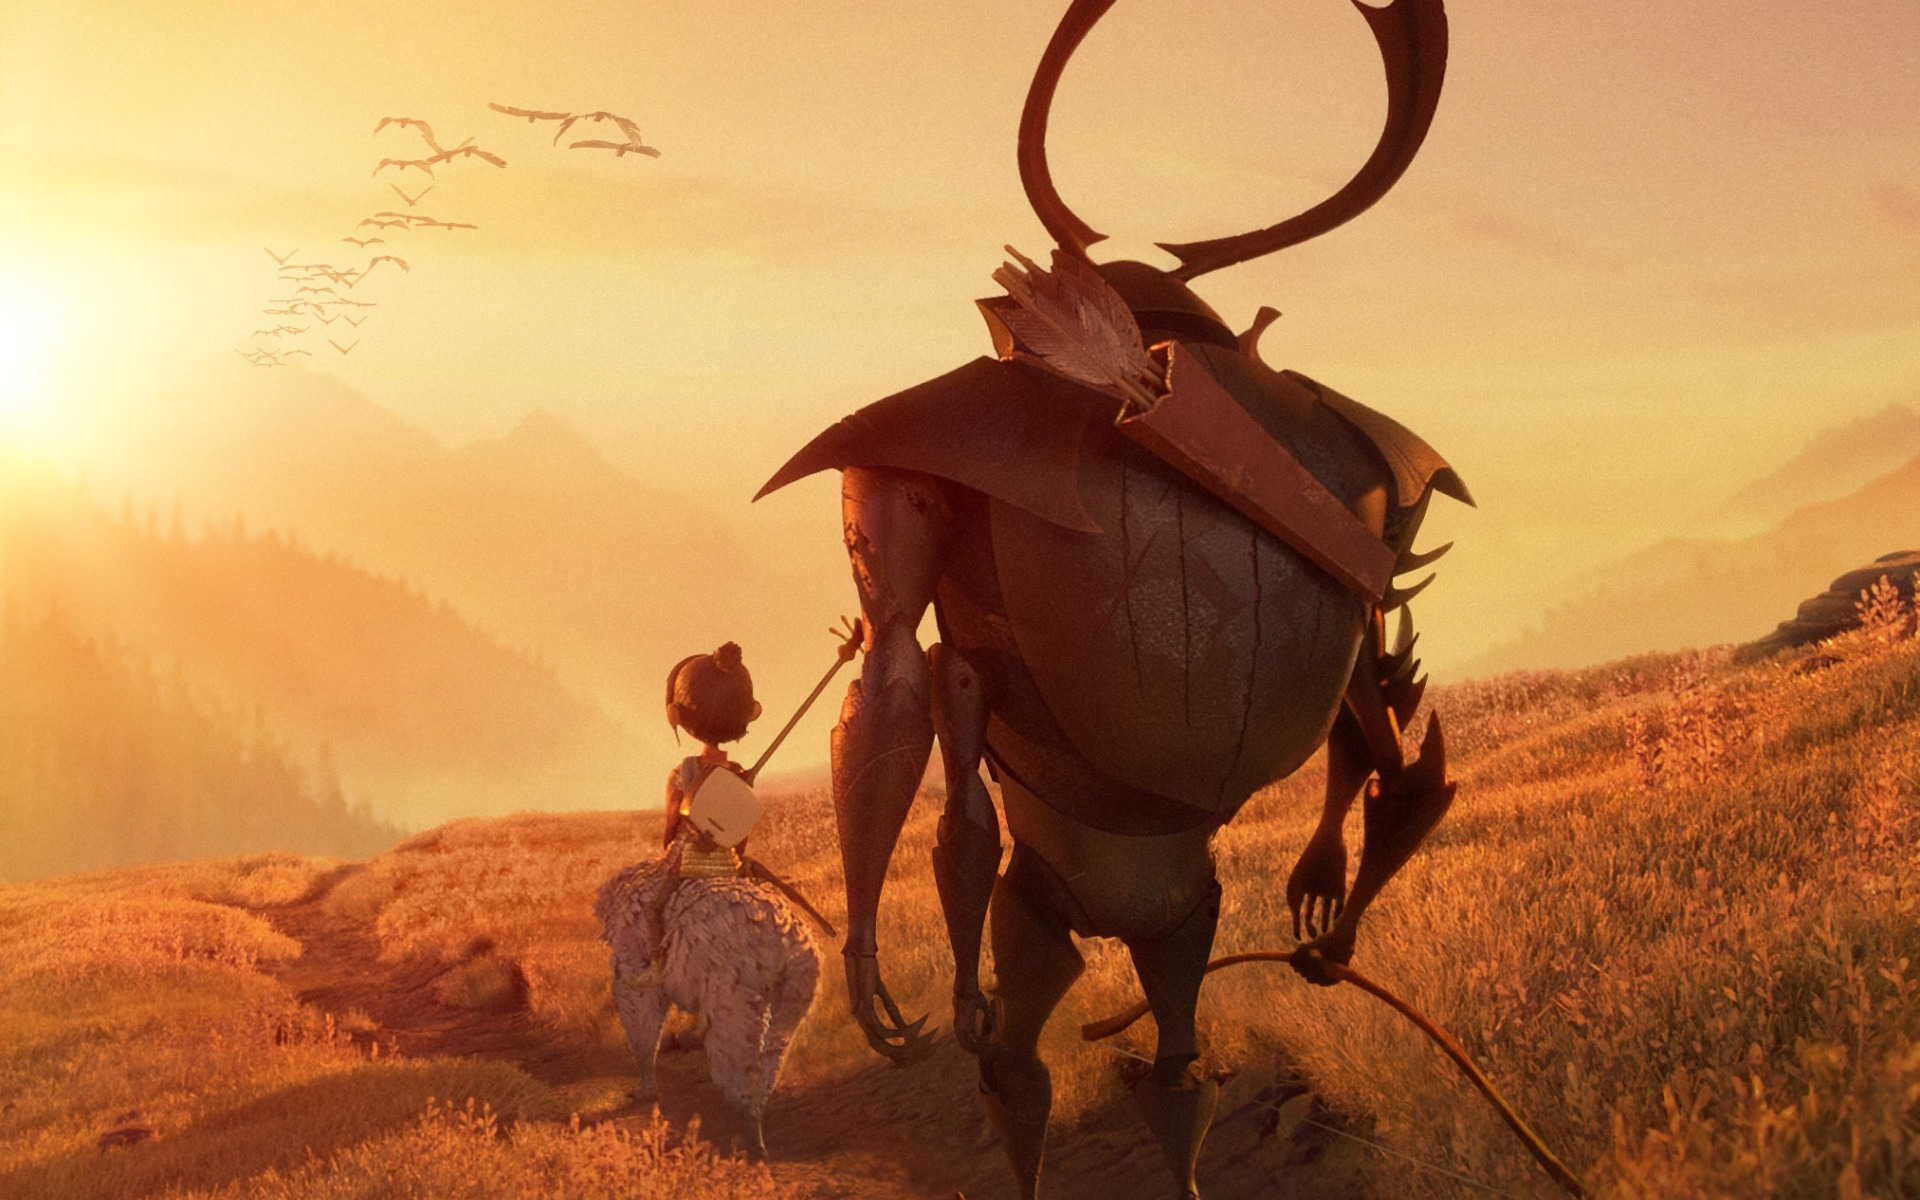 Kubo And The Two Strings Beetle And Kubo Wallpapers 1920x1200